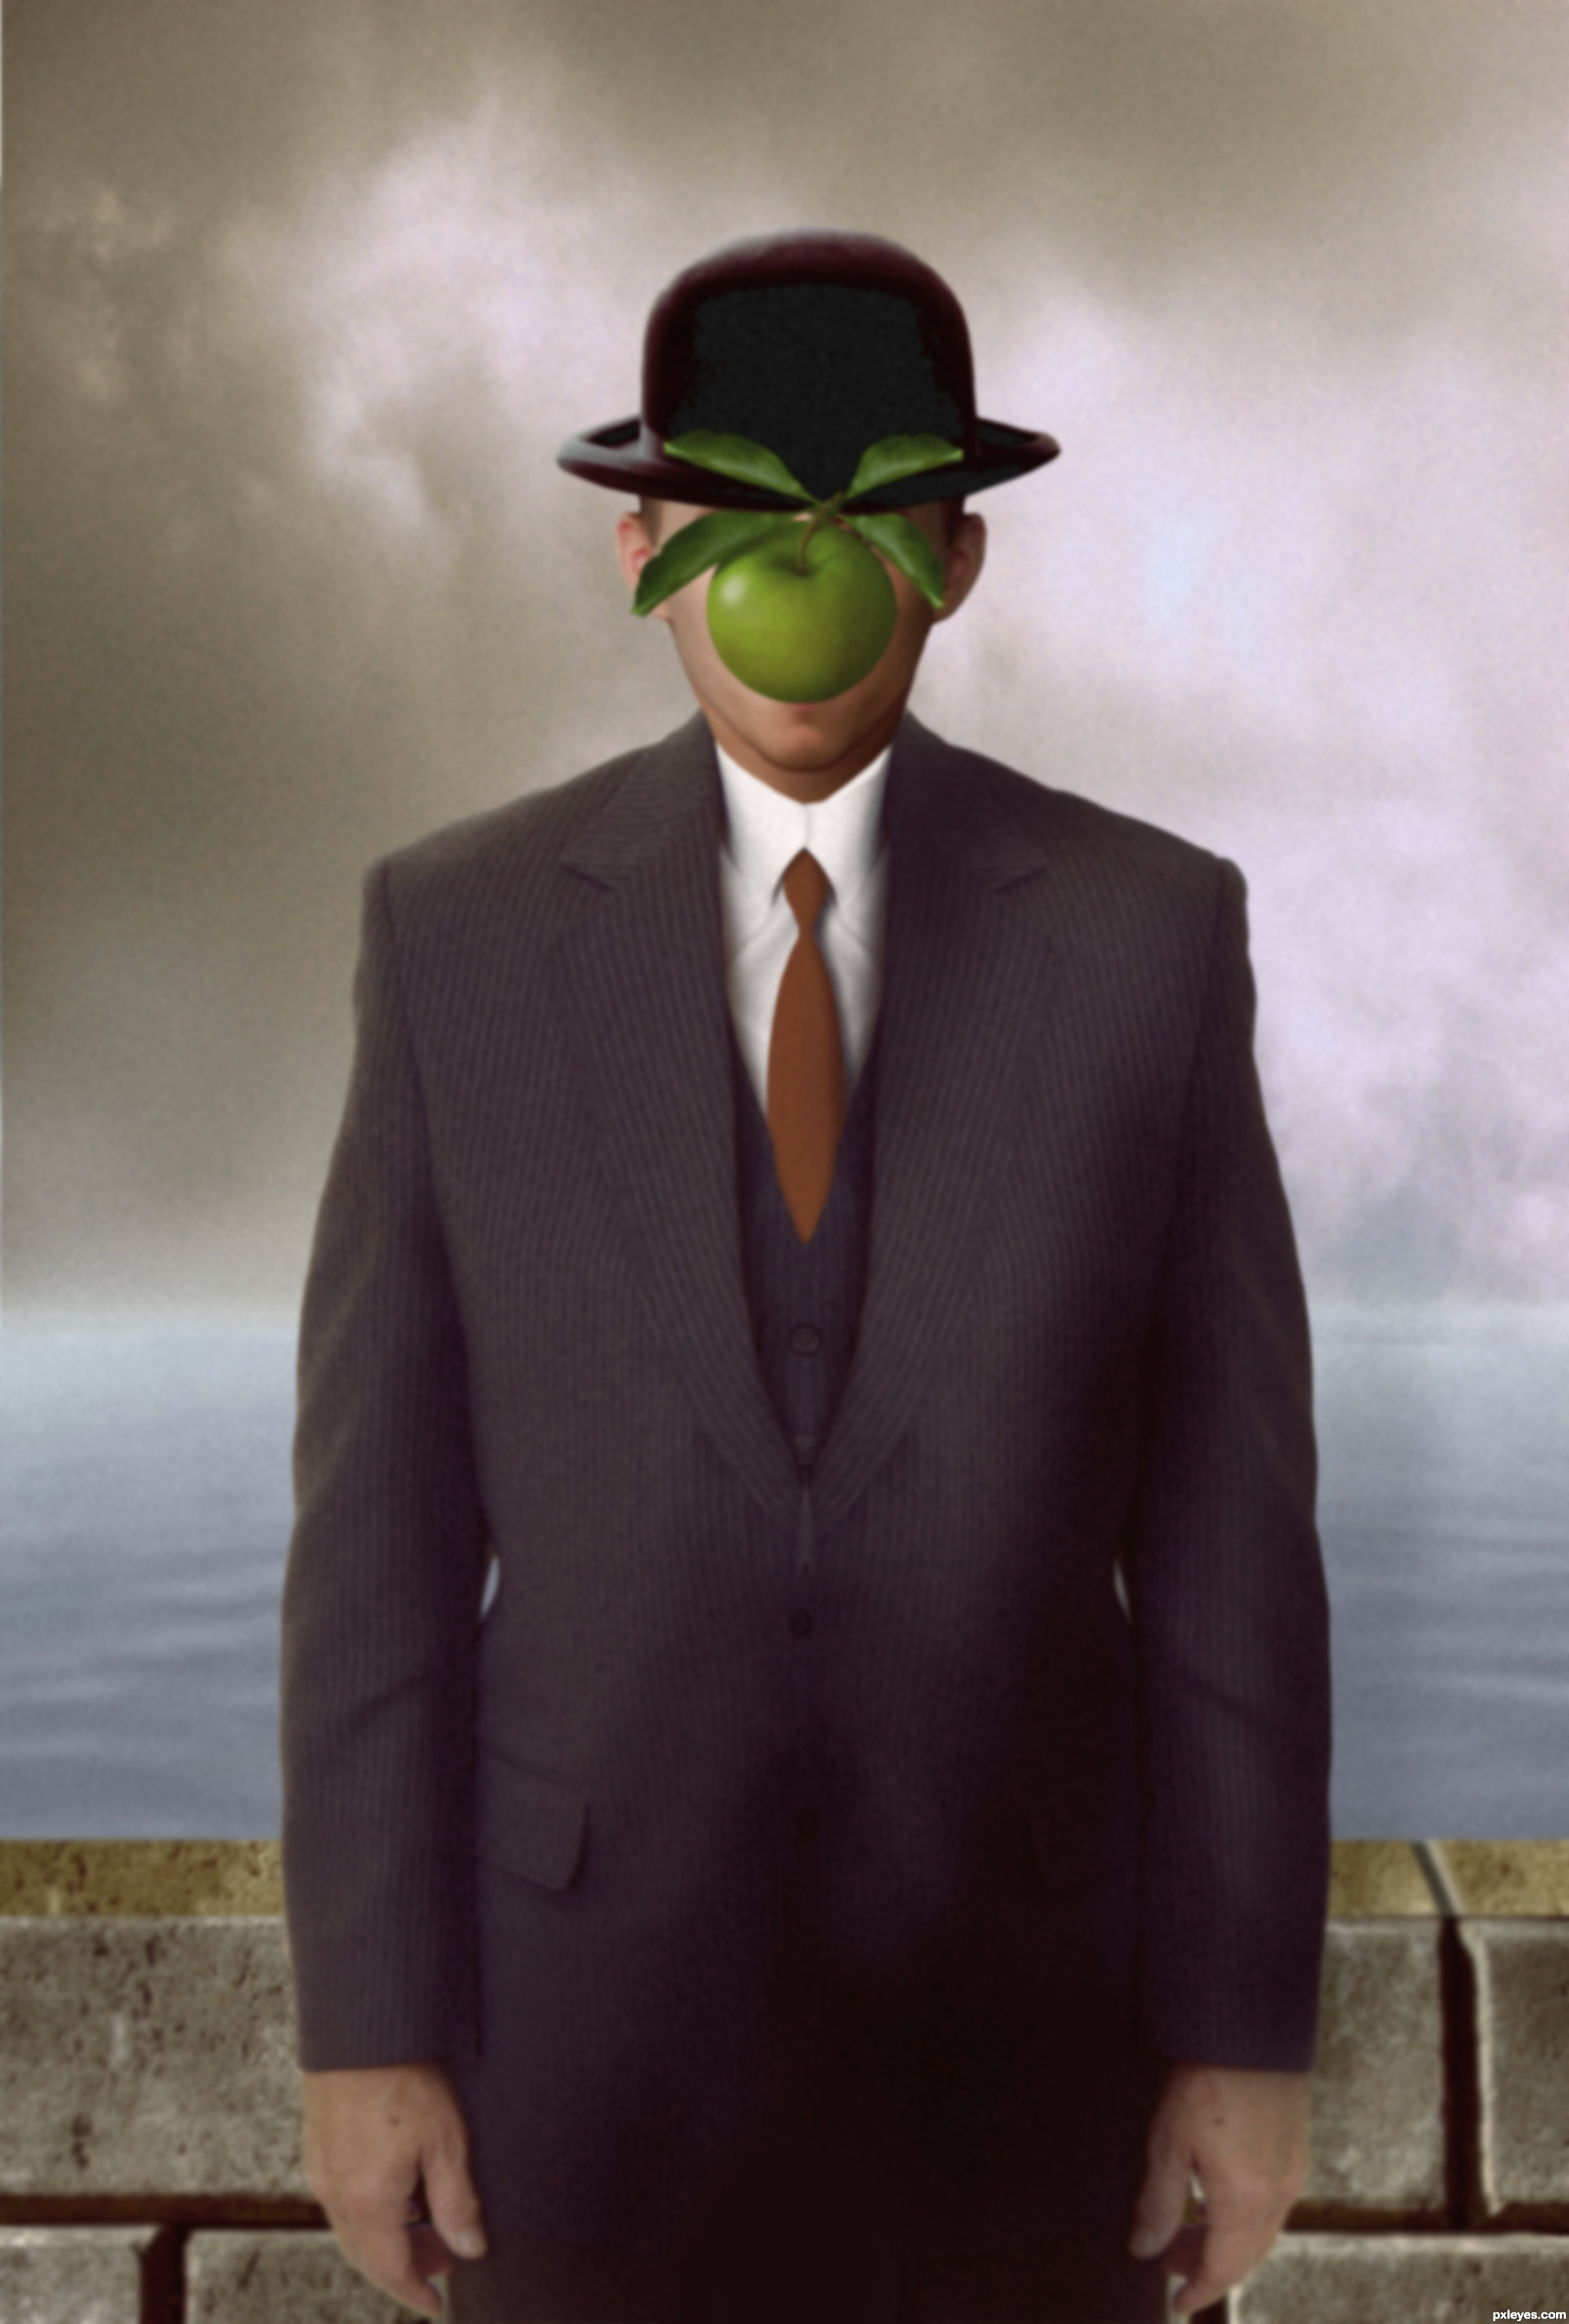 Rene Magritte The Son Of Man Google Images